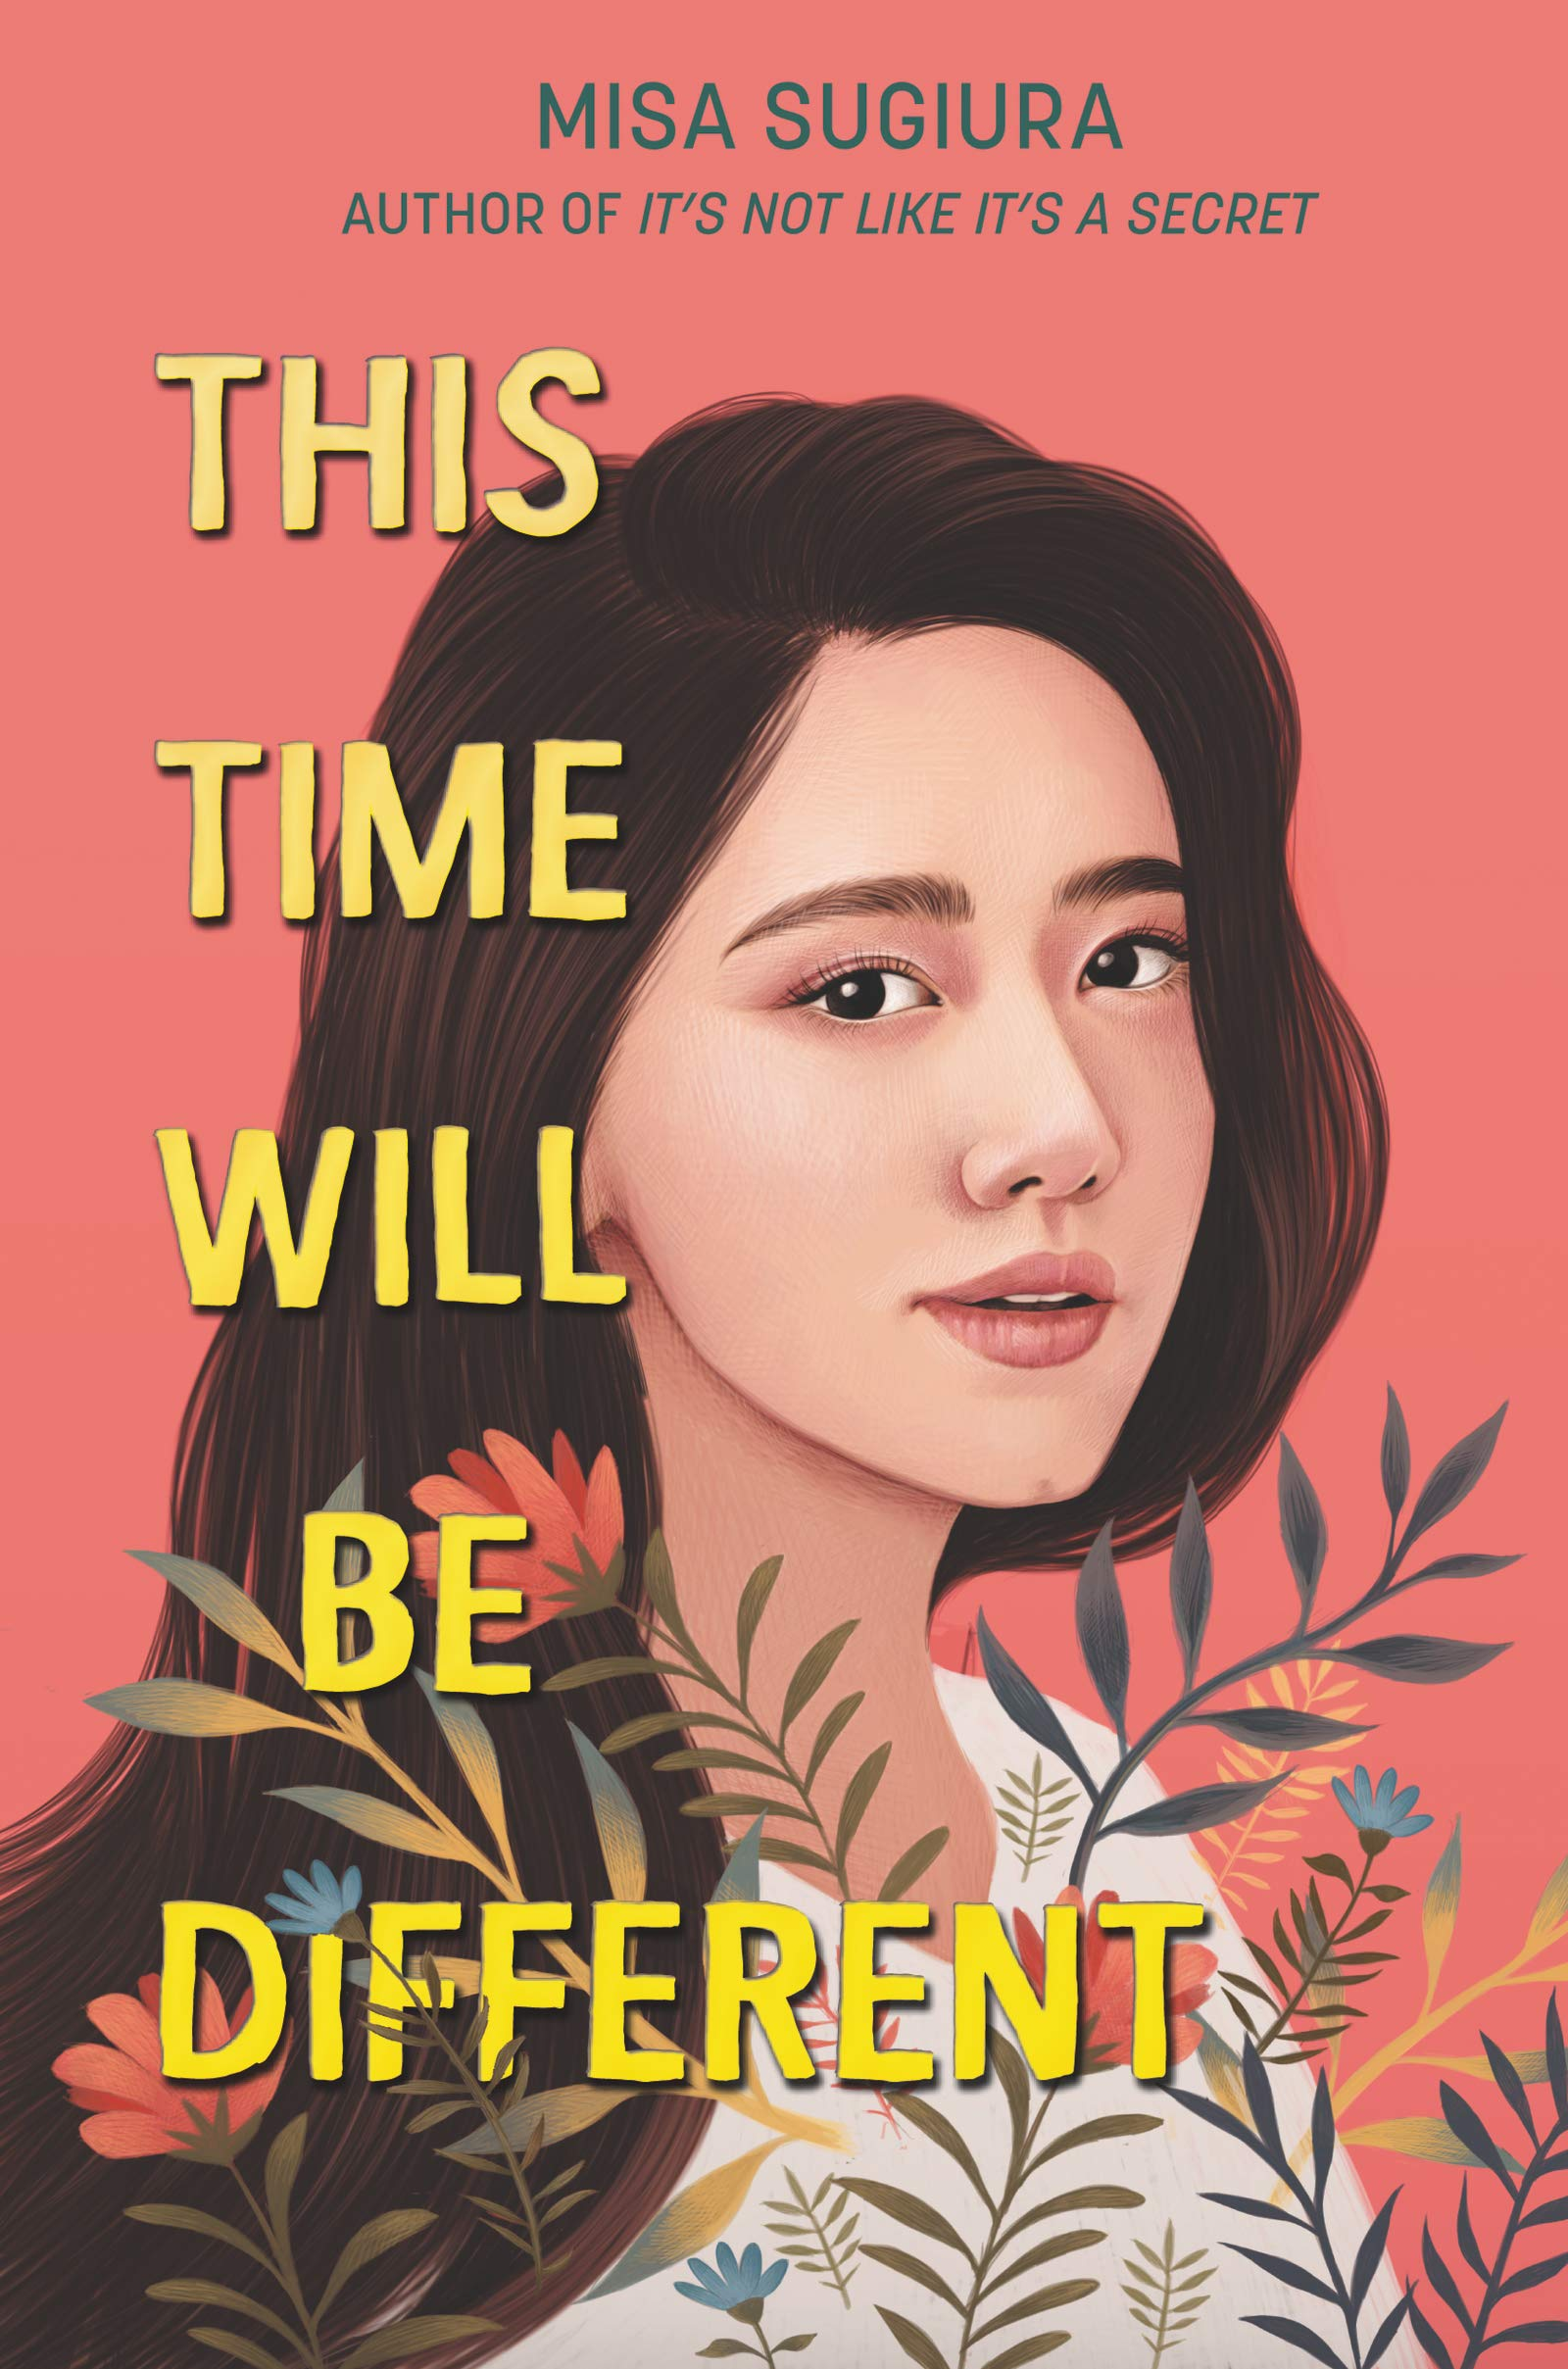 Amazon.com: This Time Will Be Different (9780062473448): Sugiura ...